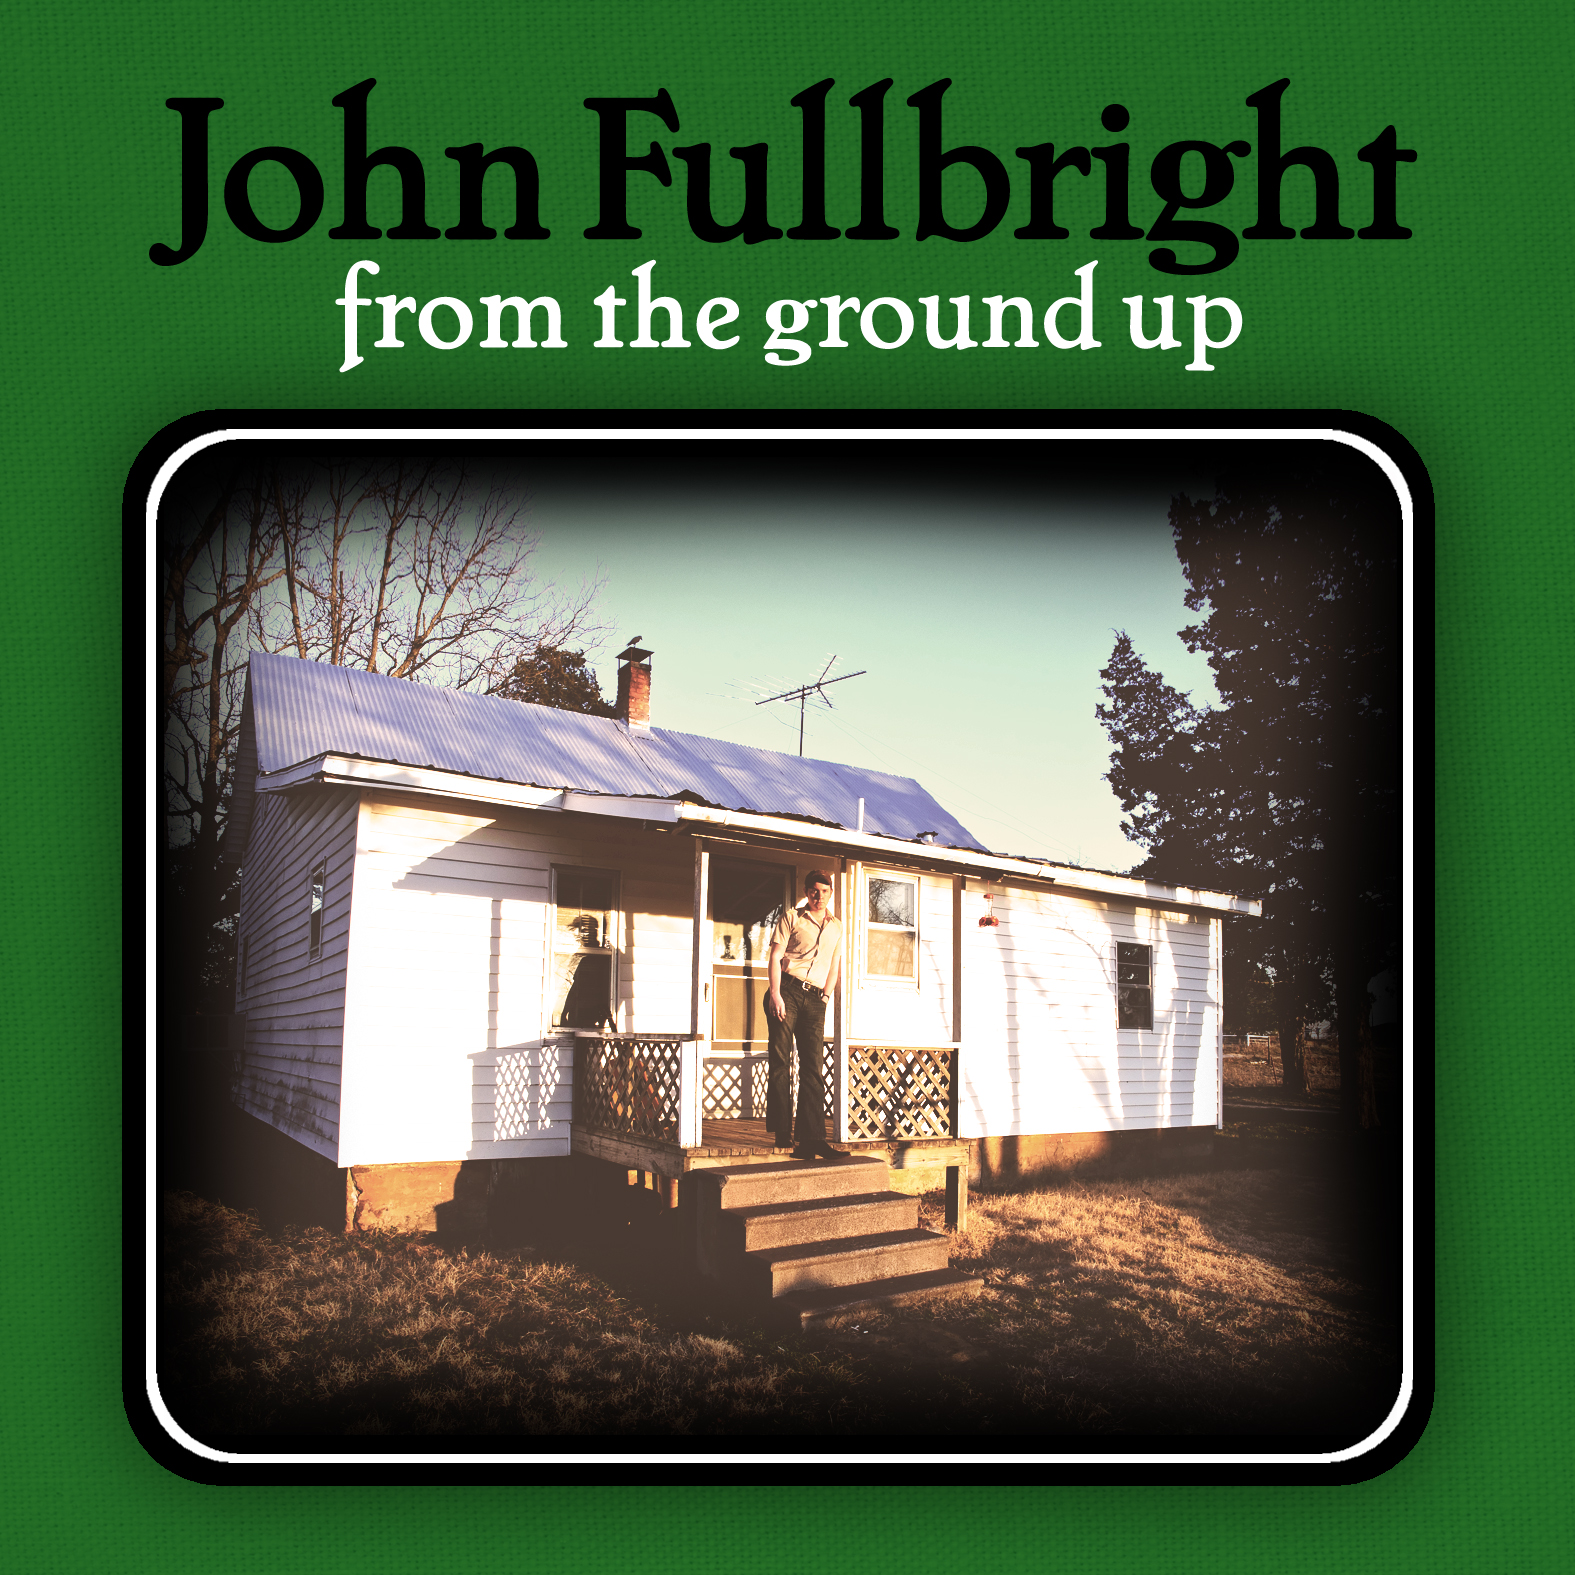 From The Ground Up from the ground up - john fullbright